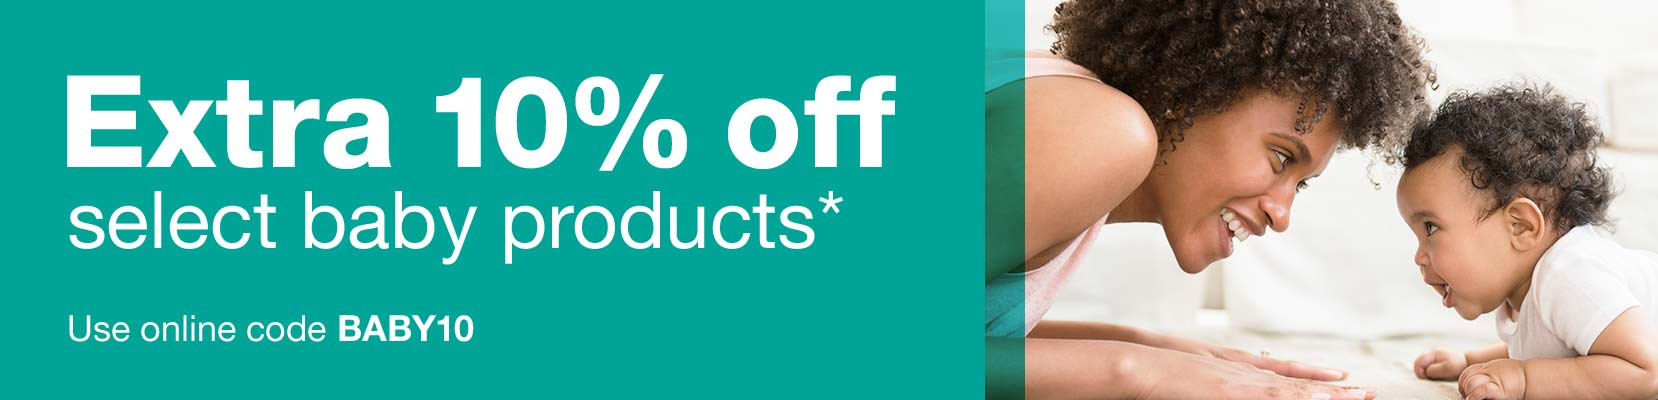 Extra 10% off select baby products.* Use online code BABY10.